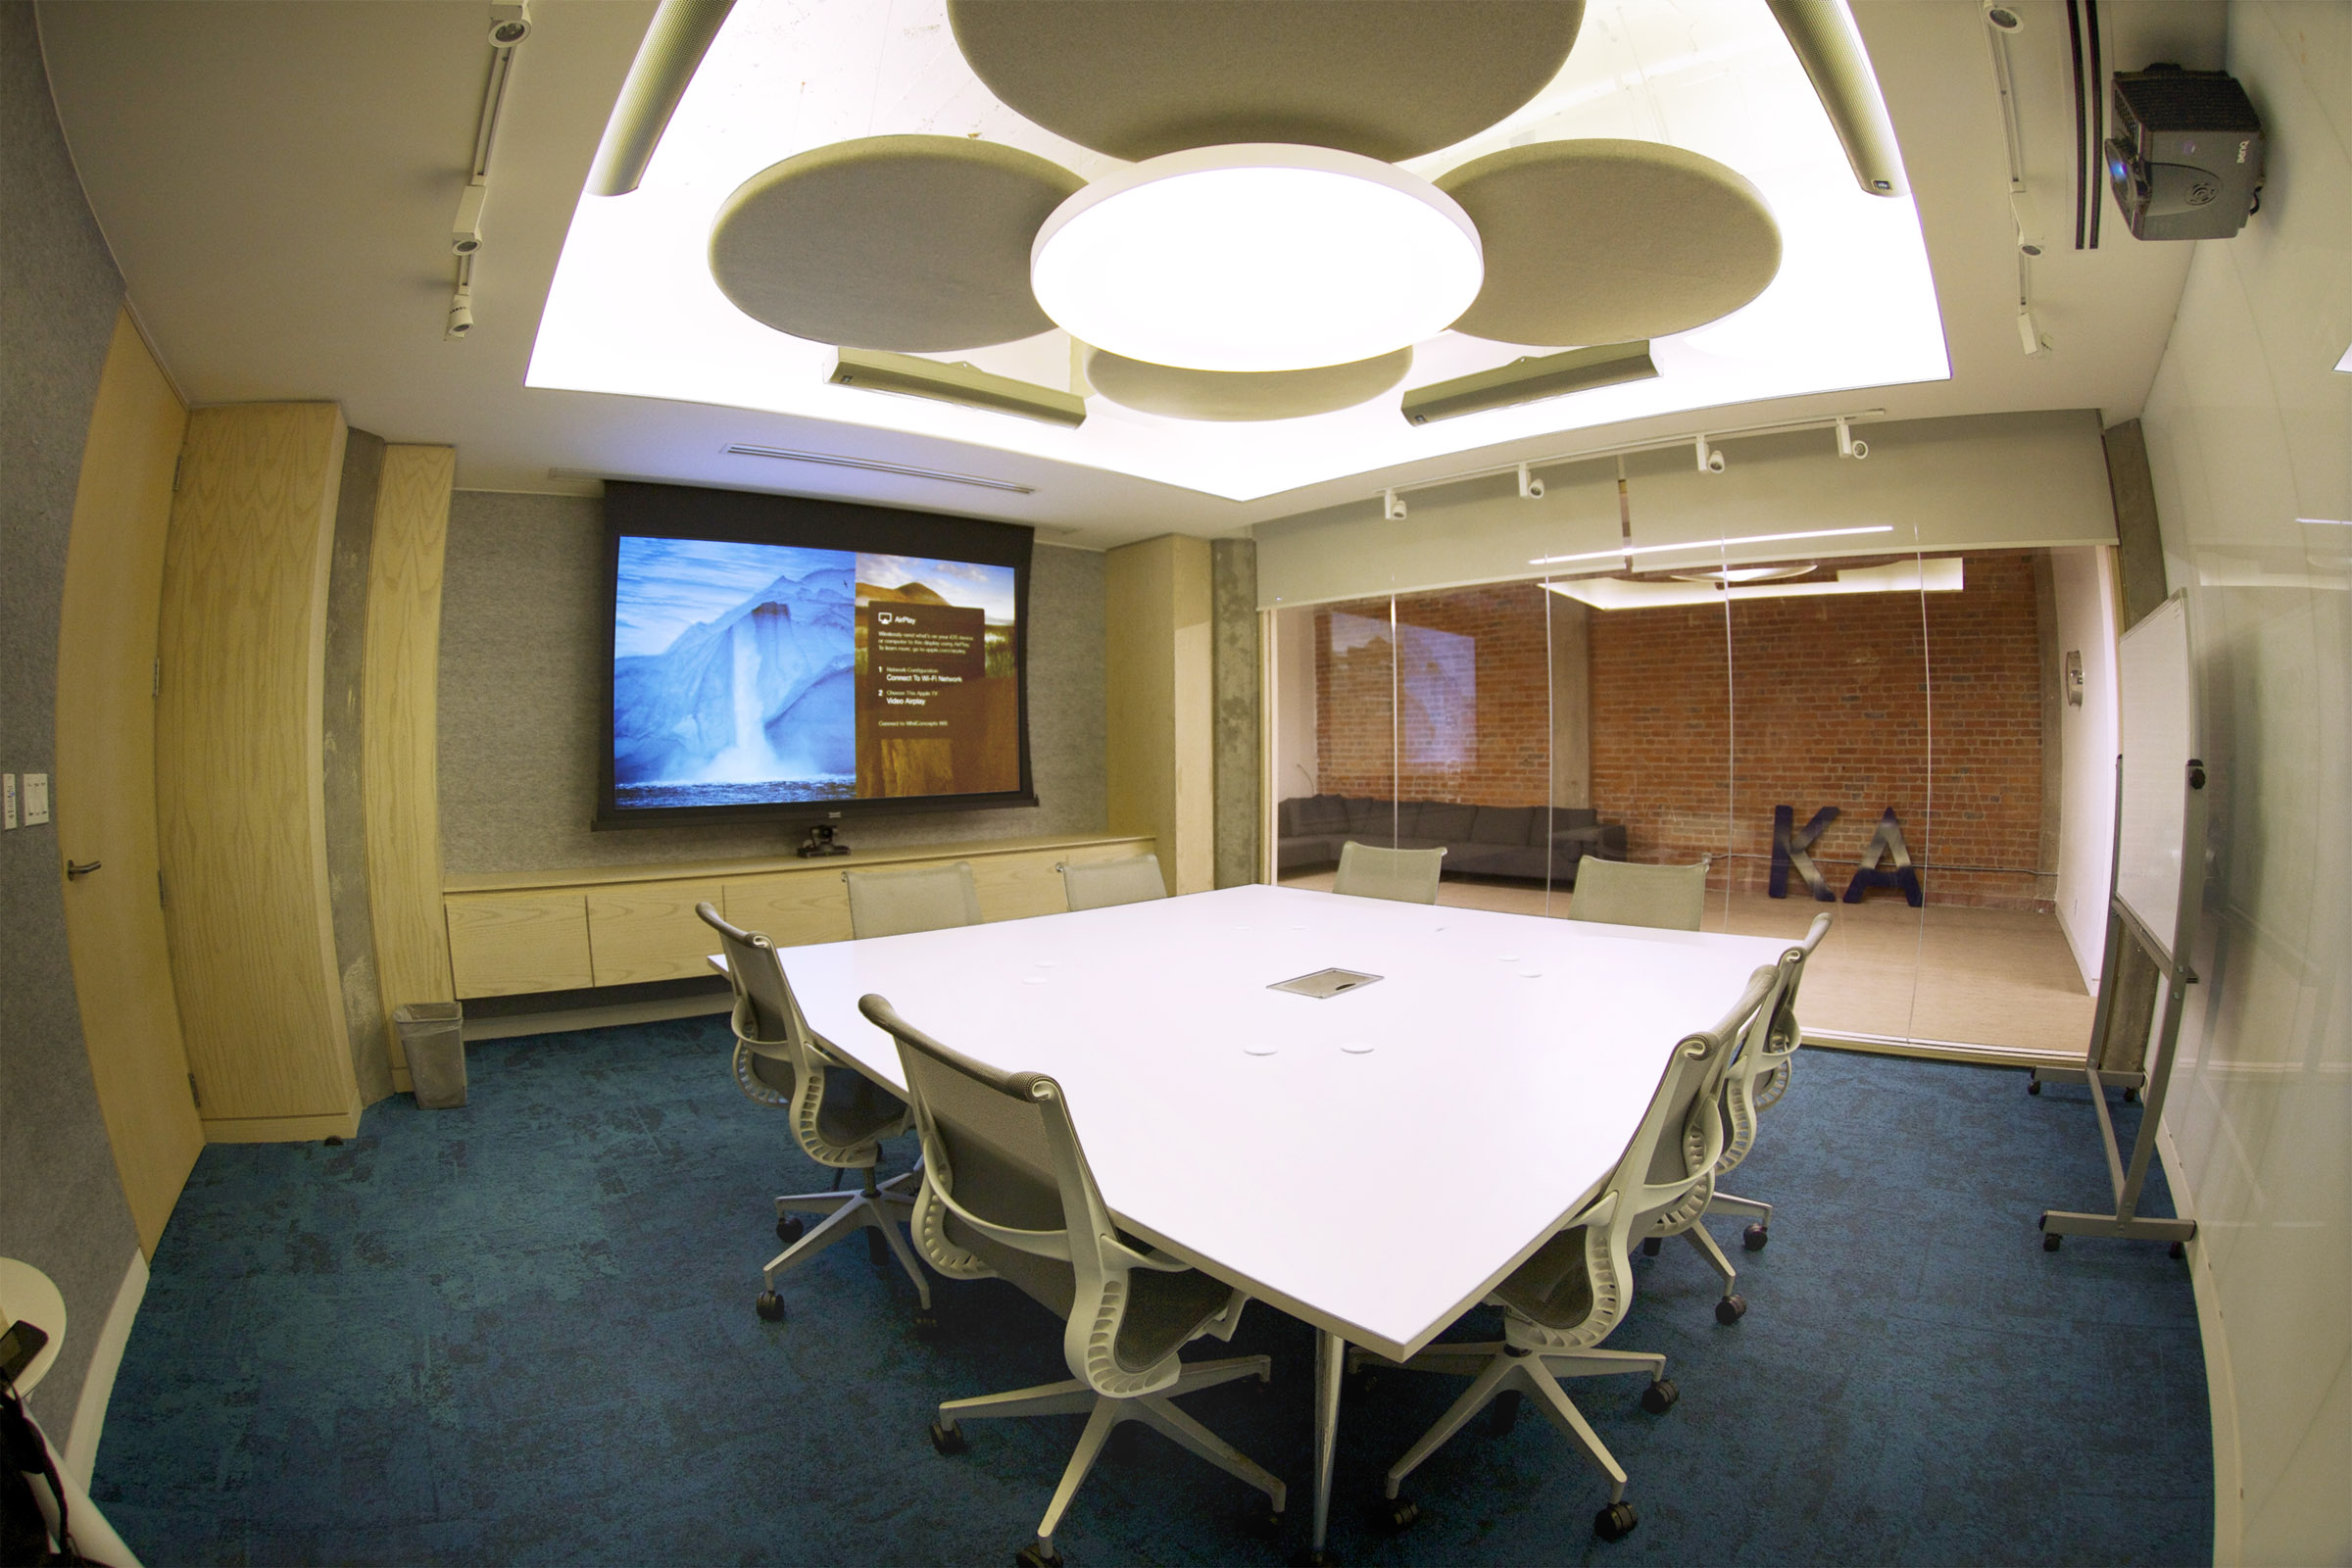 An array of round acoustic panels in an up-lit ceiling cove are surrounded by four Renkus-Heinz speakers.